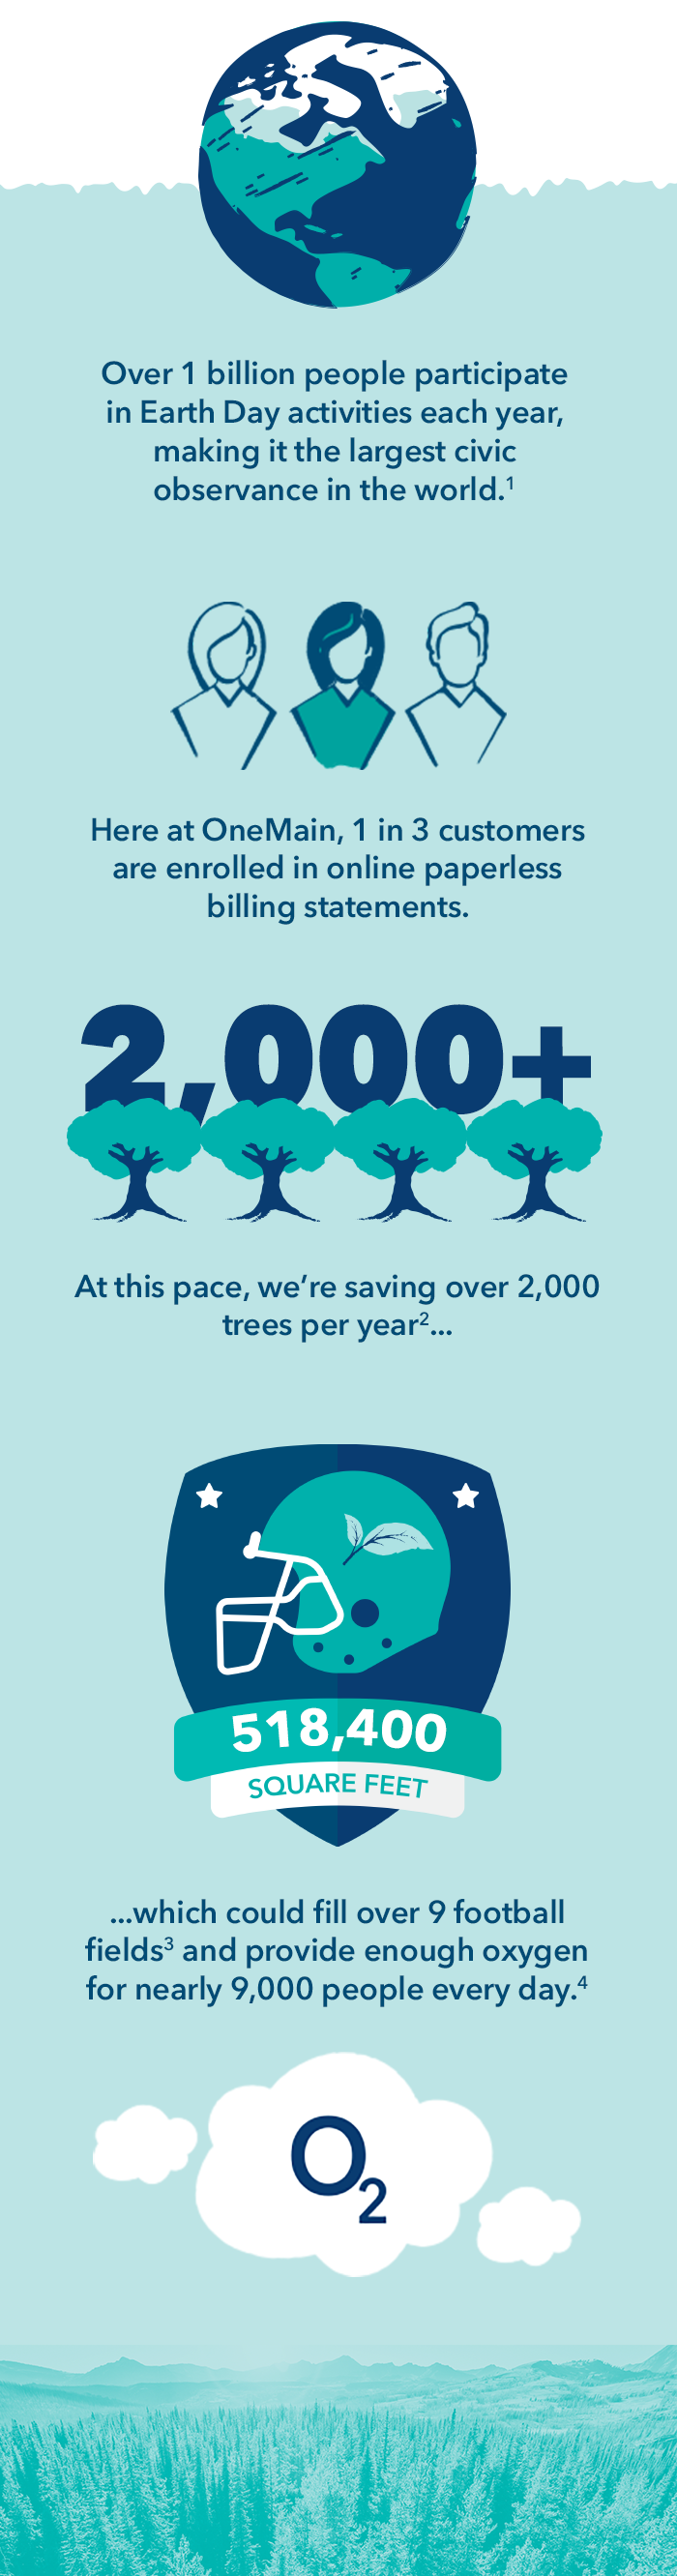 Celebrate Earth Day 2019 by Going Paperless and Saving ...